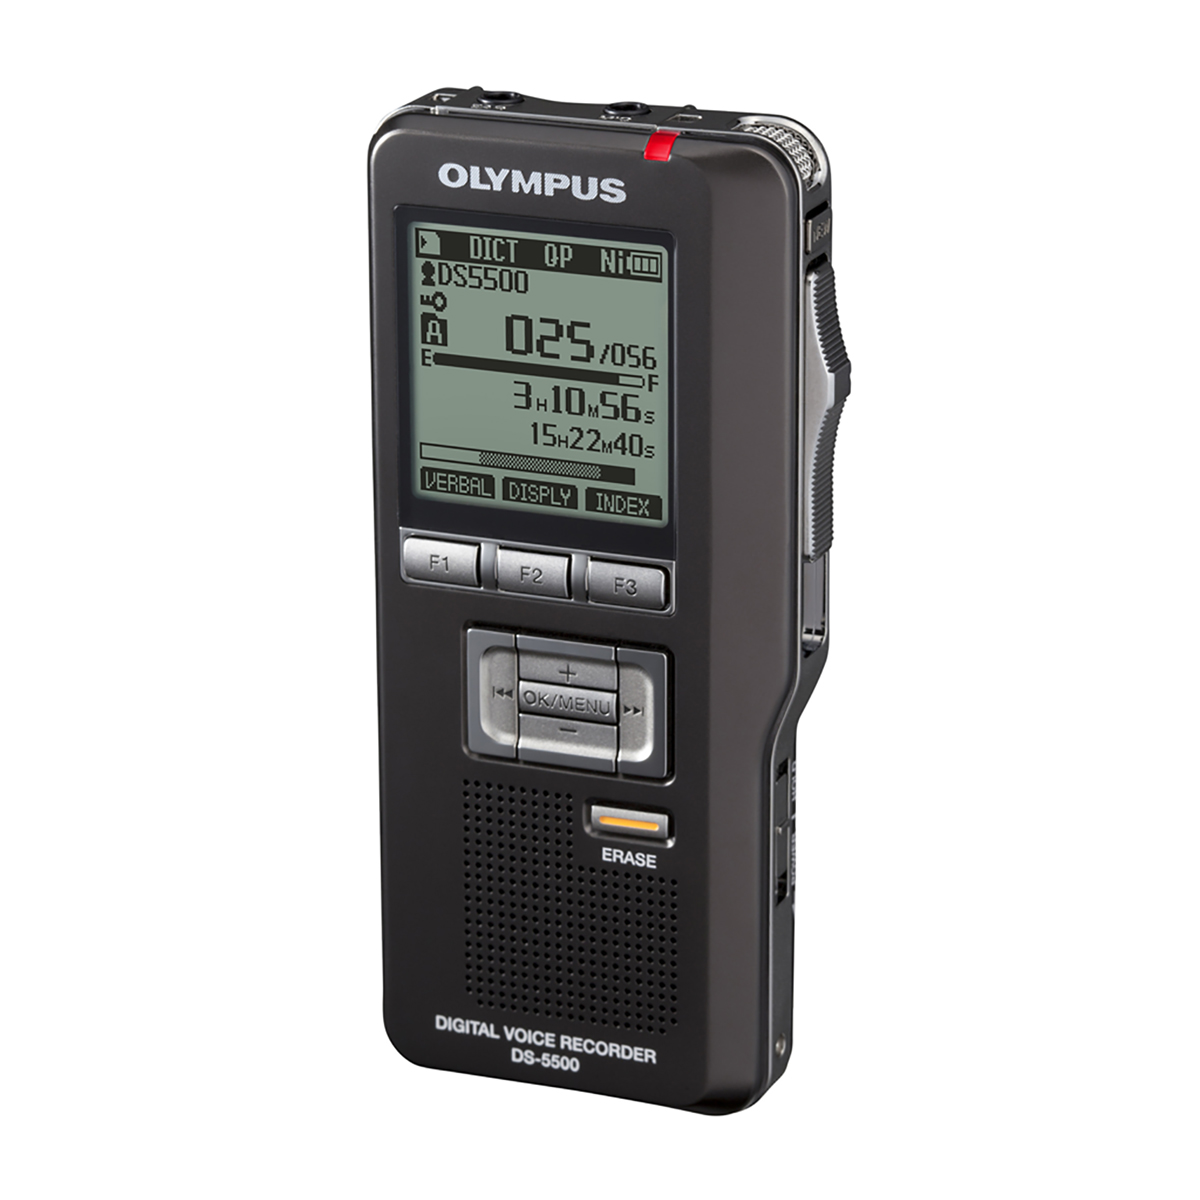 Olympus DS-5500 Pro Digital Voice Recorder Standard Edition